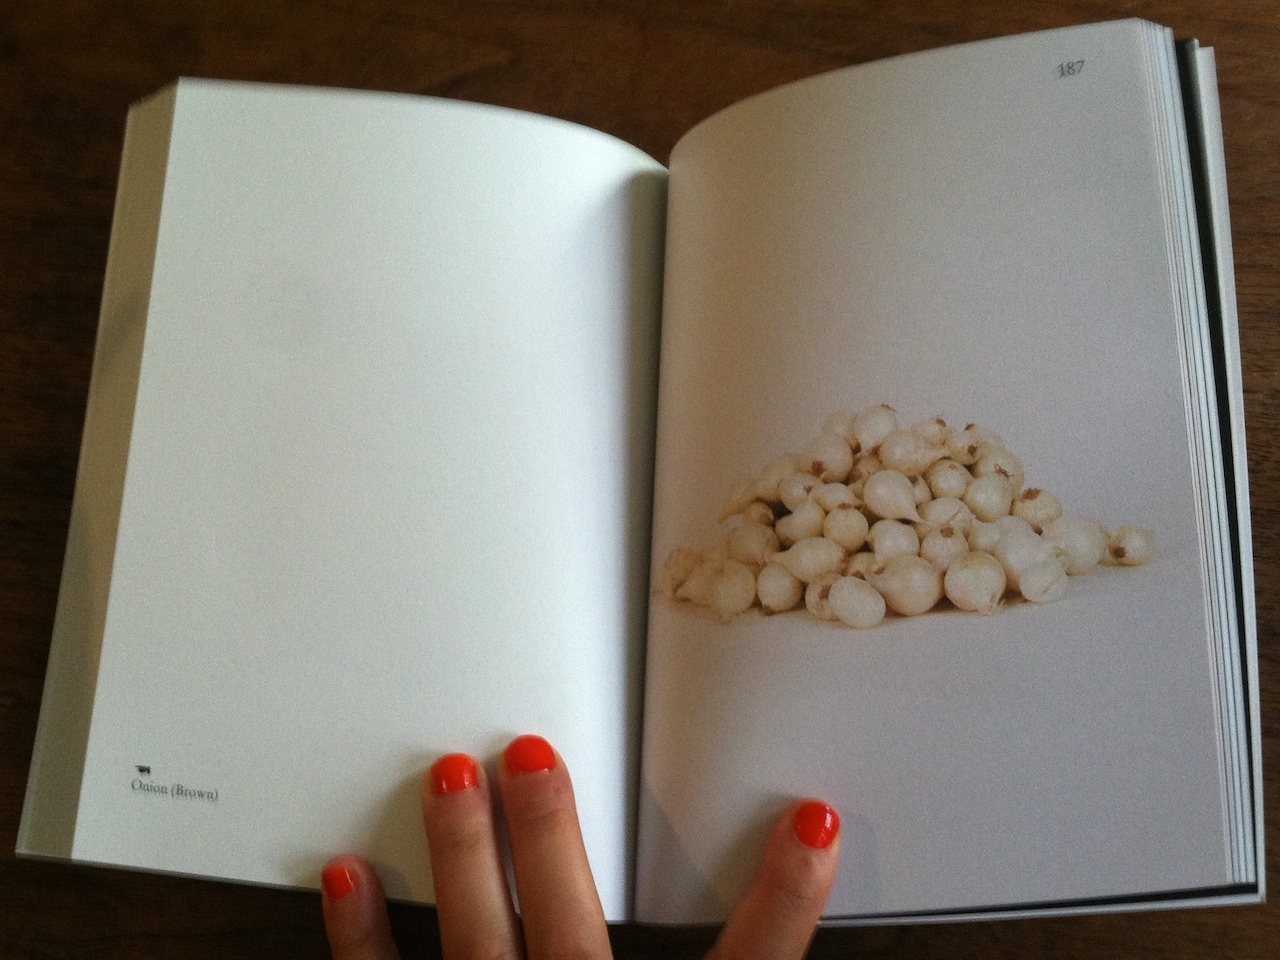 A spread from Elad Lassry's 'On Onions'